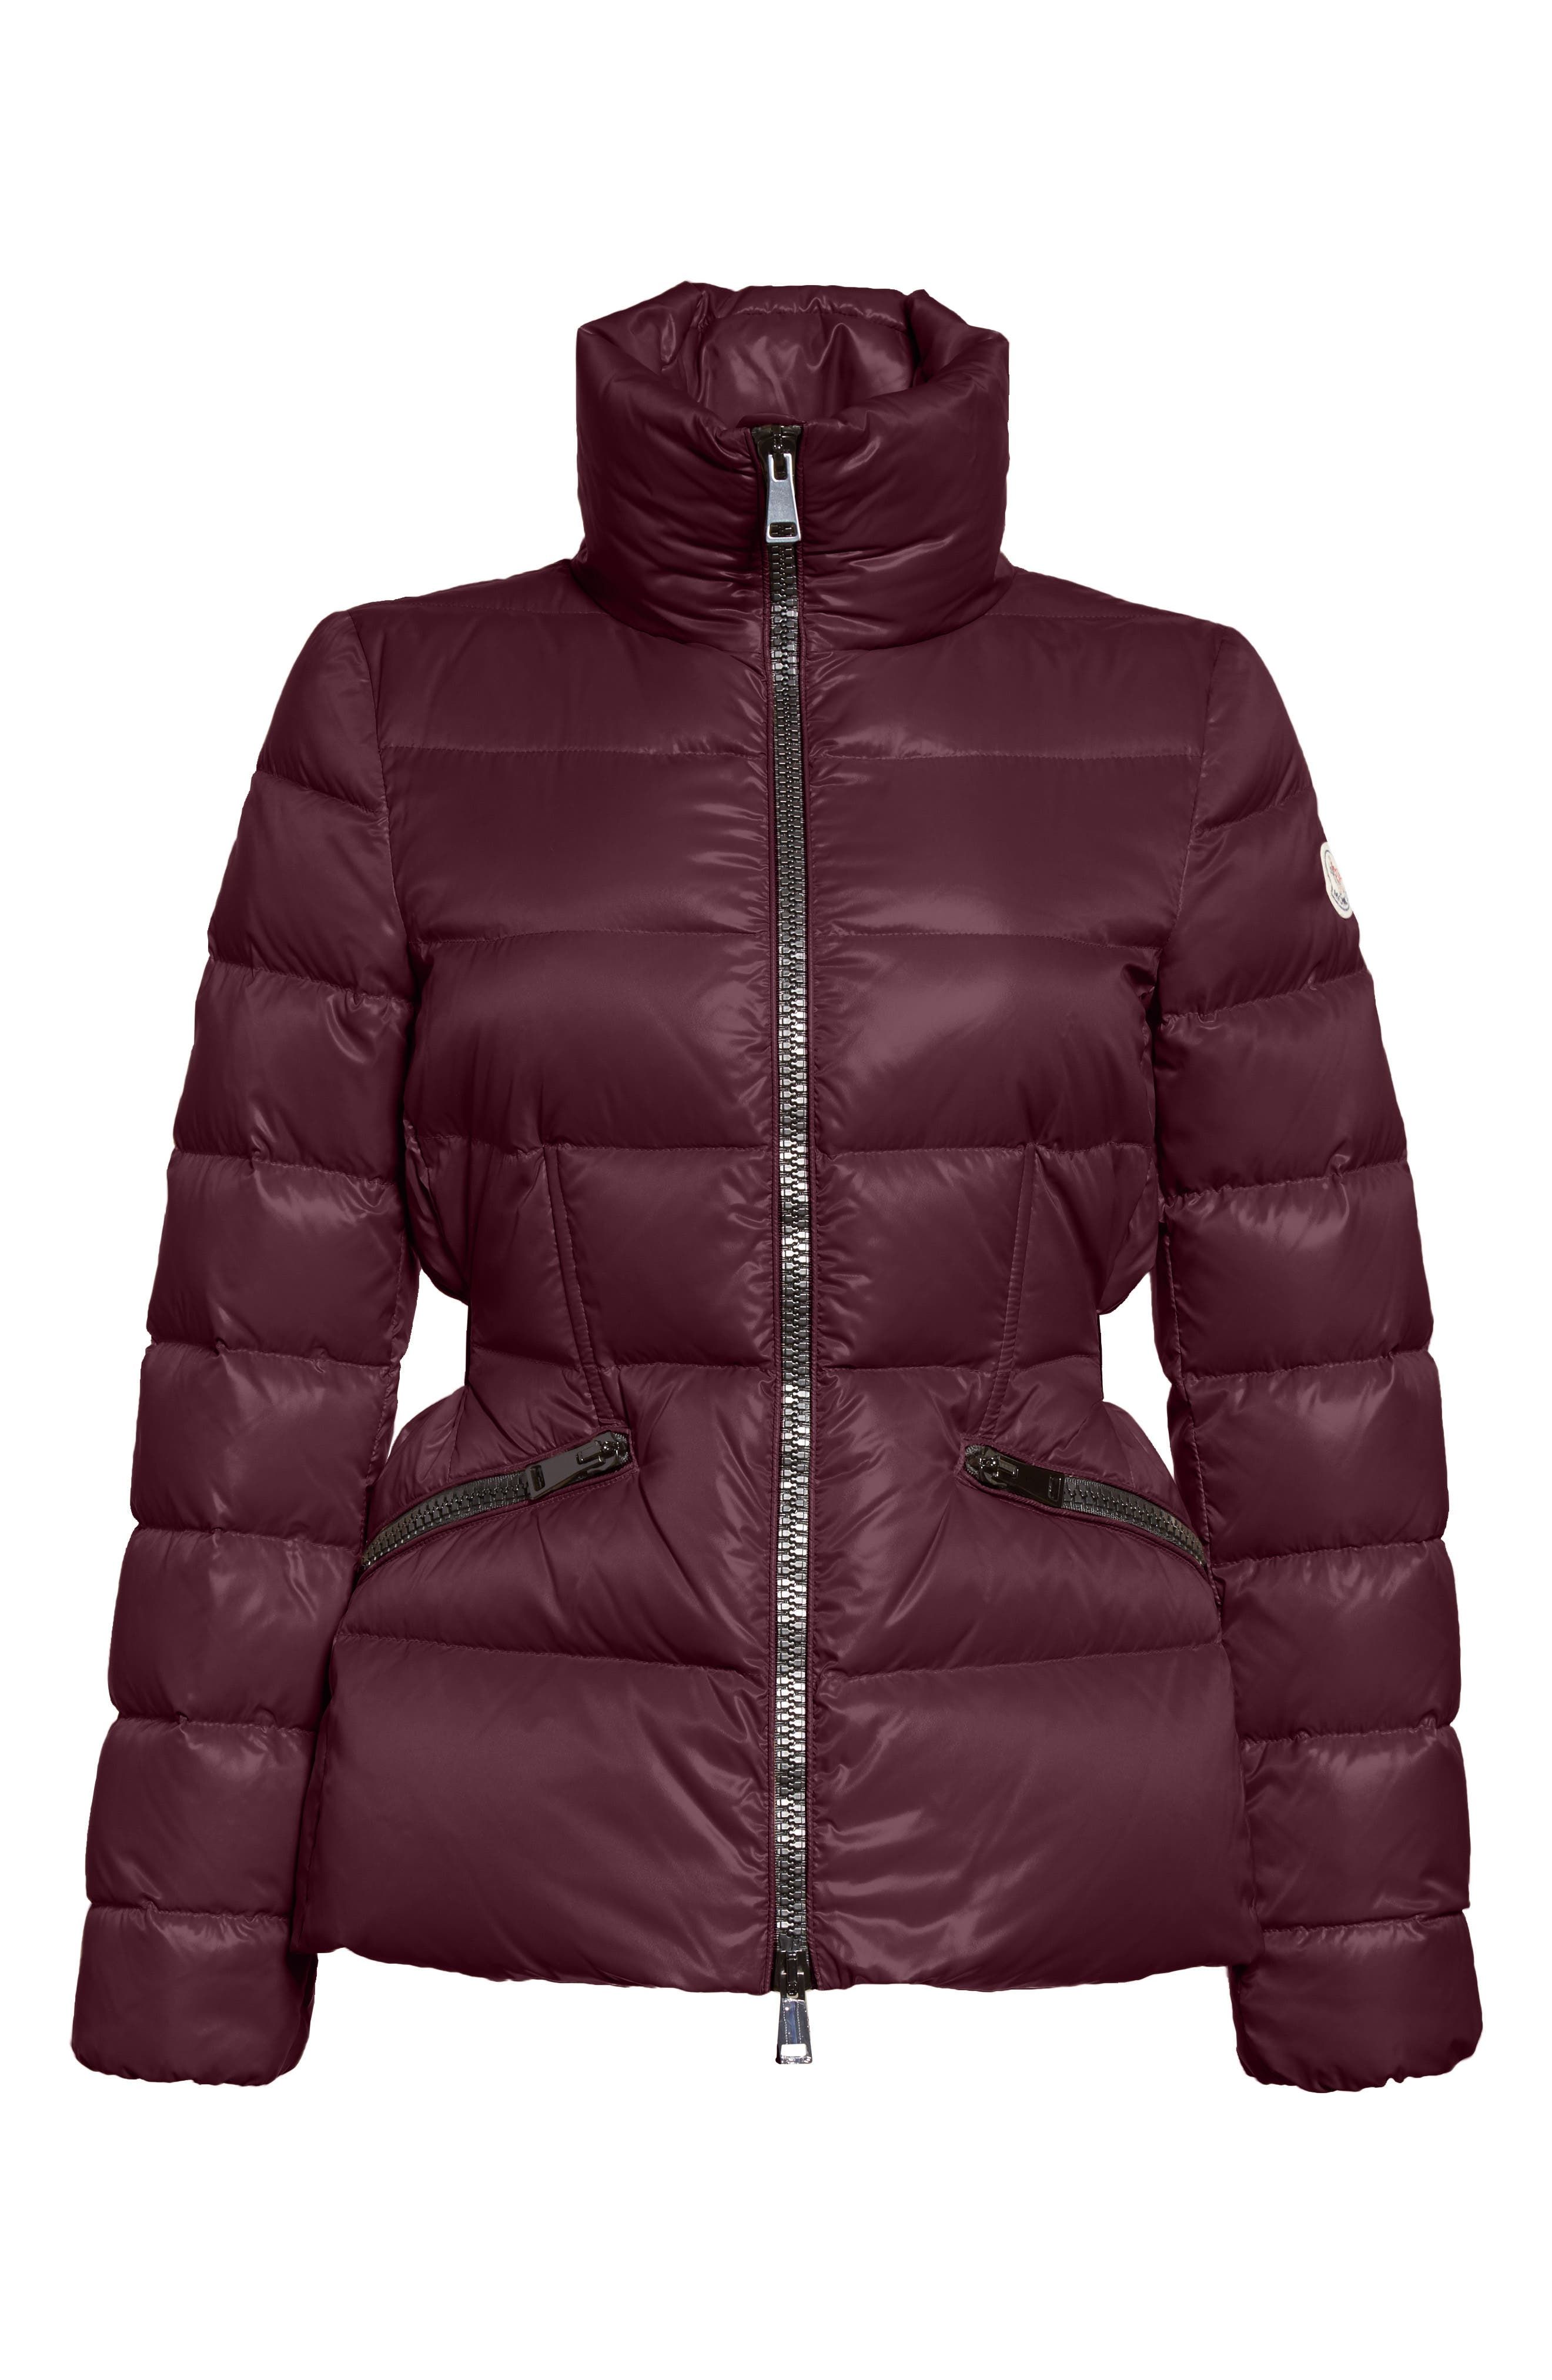 Danae Down Puffer Jacket,                             Alternate thumbnail 5, color,                             930